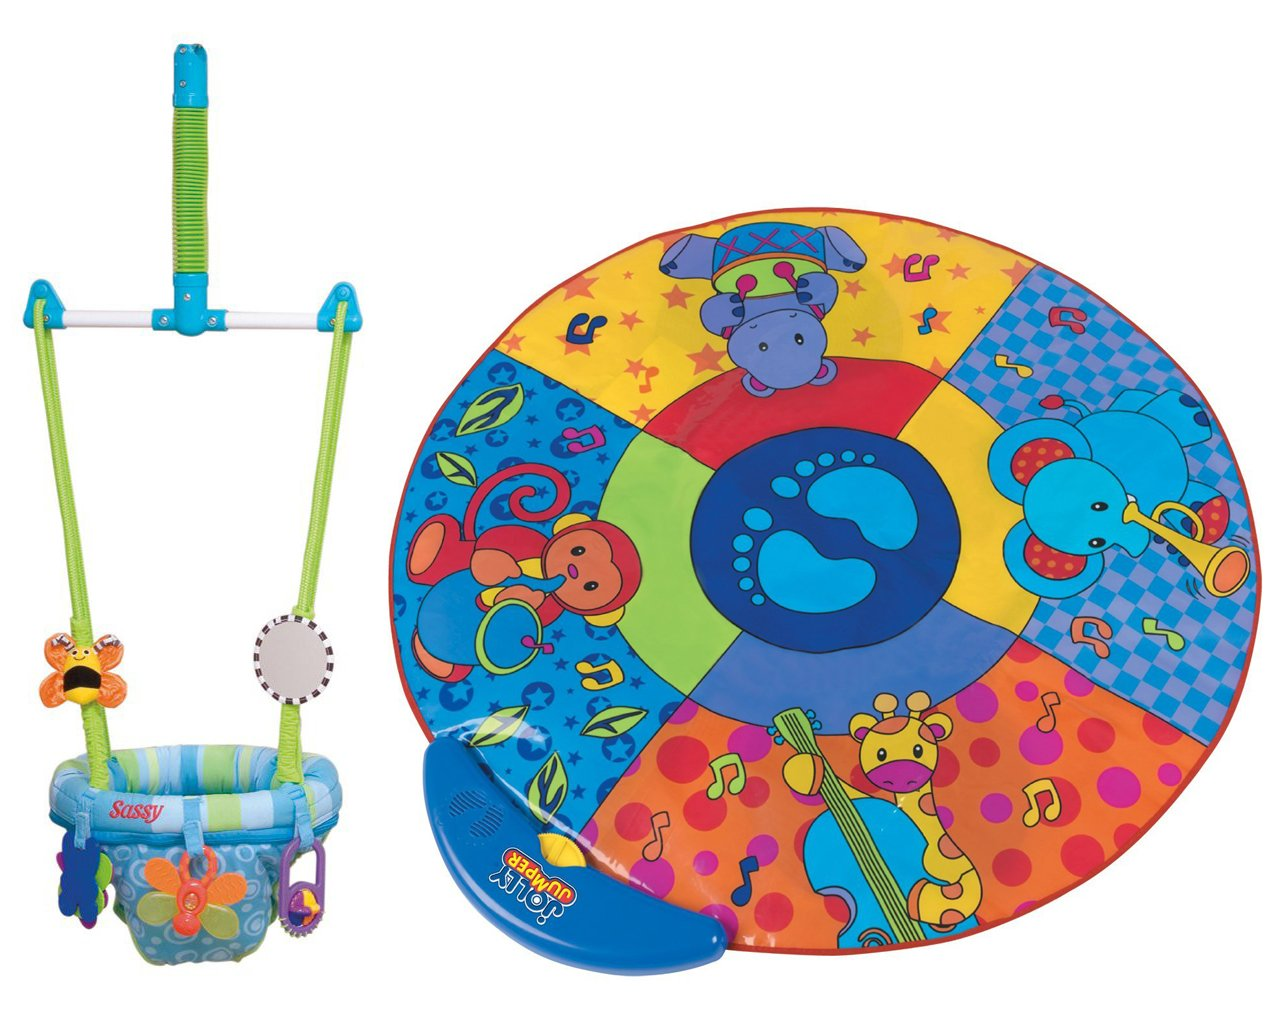 Sassy Seat Doorway Jumper, 5 Toys with Musical Play Mat sassy seat doorway jumper 5 toys with musical play mat